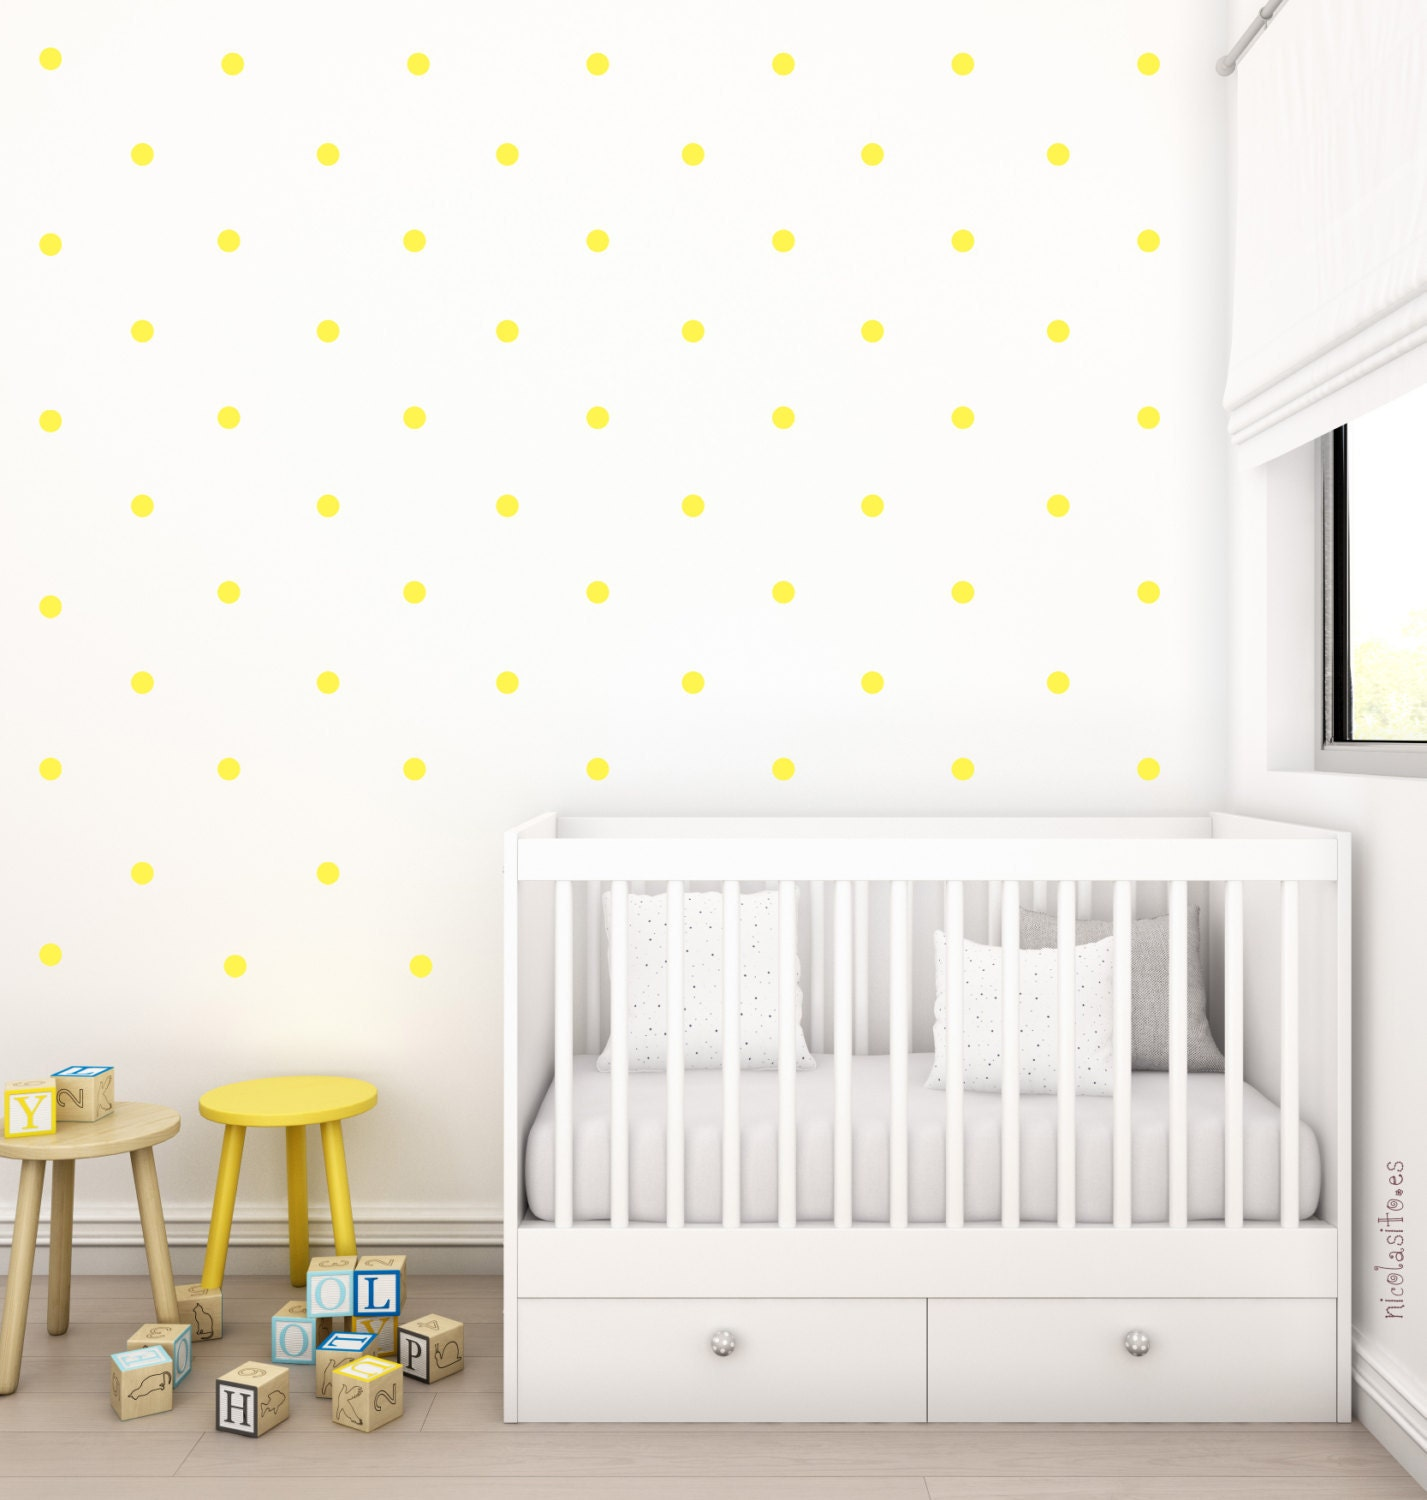 Polka Dot Wall Decals For Kids Rooms : Yellow Polka dots Nursery Wall Decal.Wall Stickers by NicolasitoEs